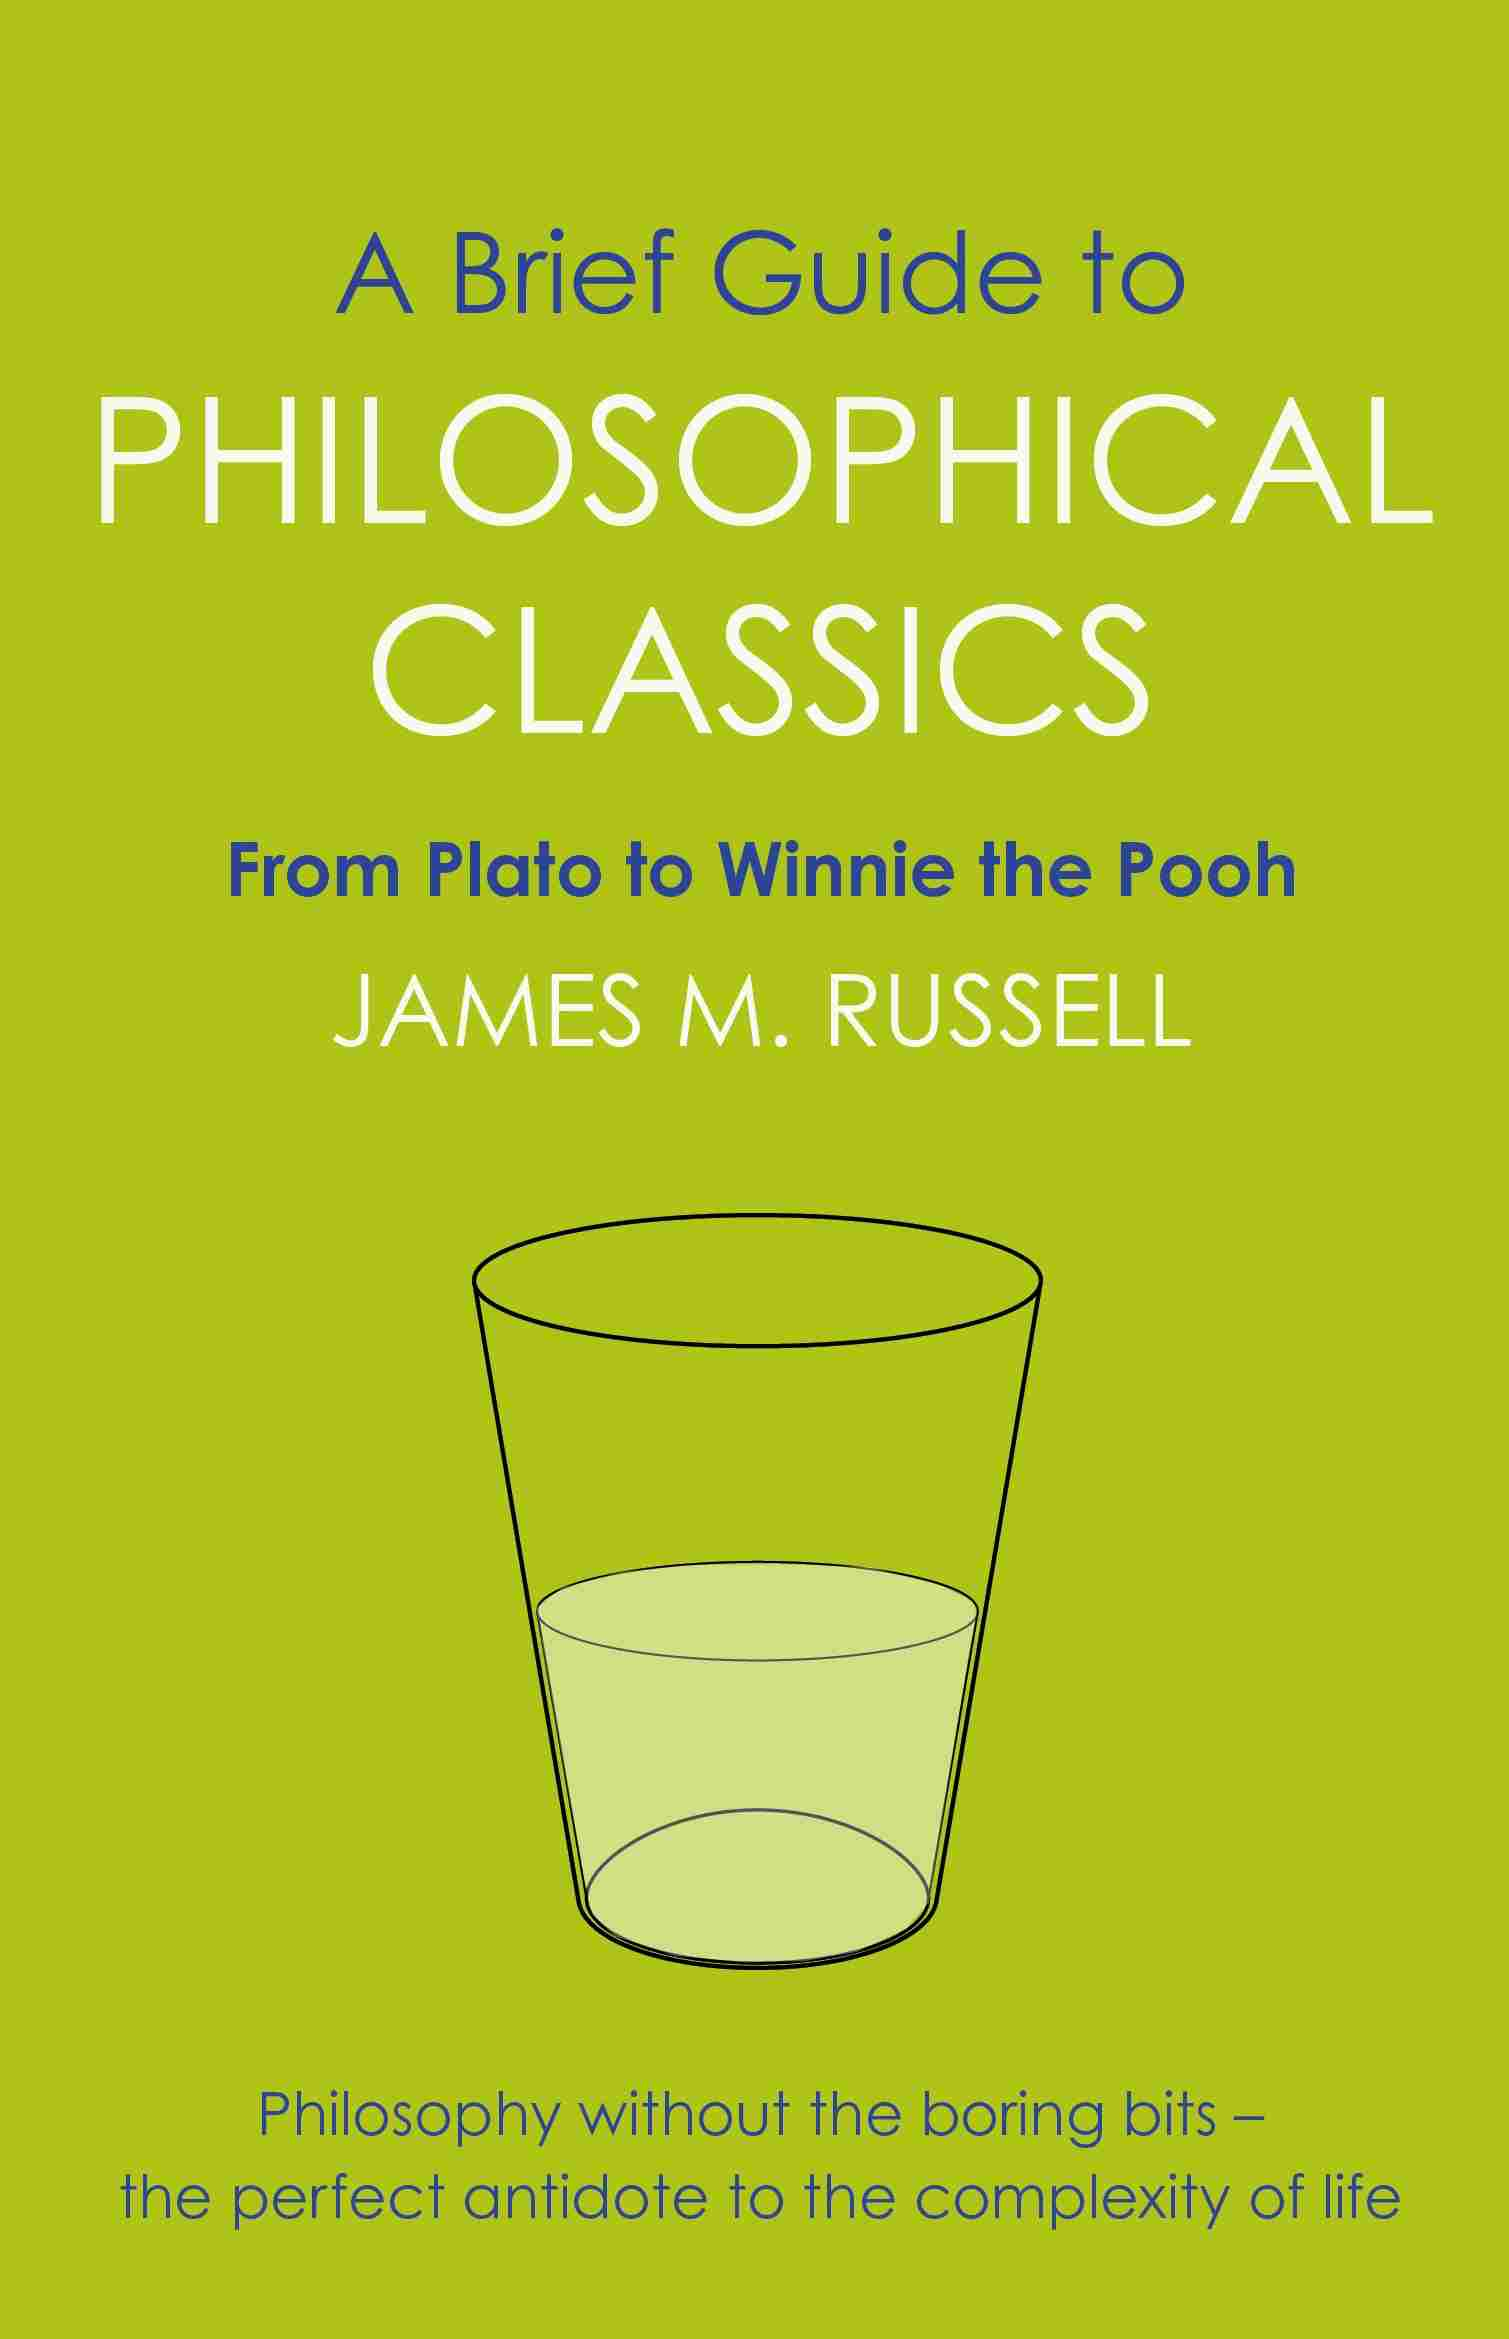 A BRIEF GUIDE TO PHILOSOPHICAL CLASSICS